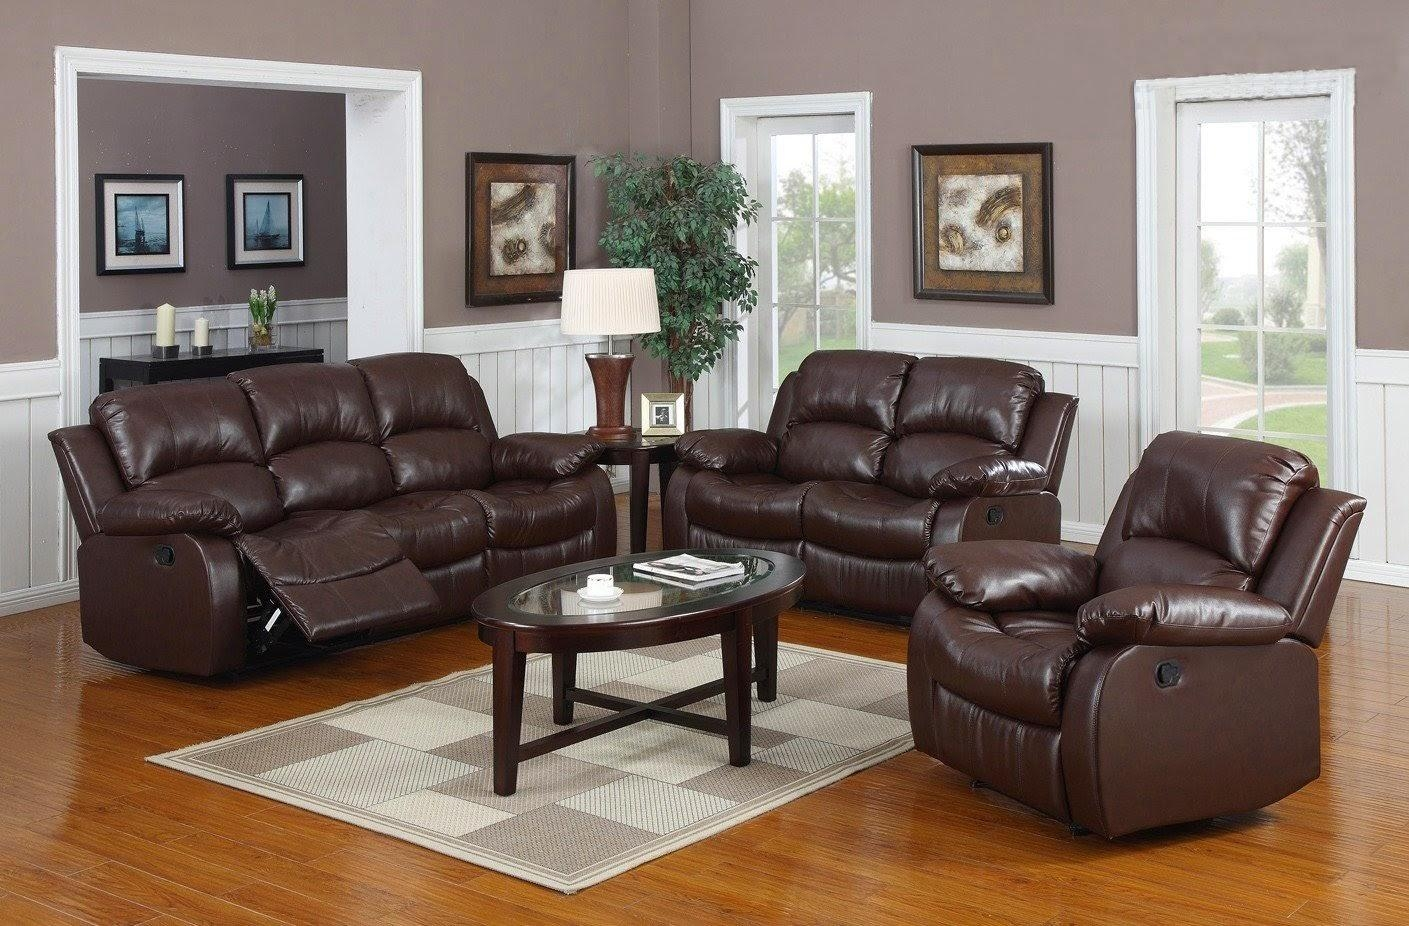 Sofas Center : Costco Leather Reclining Sofa True Innovations Inside Berkline Sofa (Image 16 of 20)